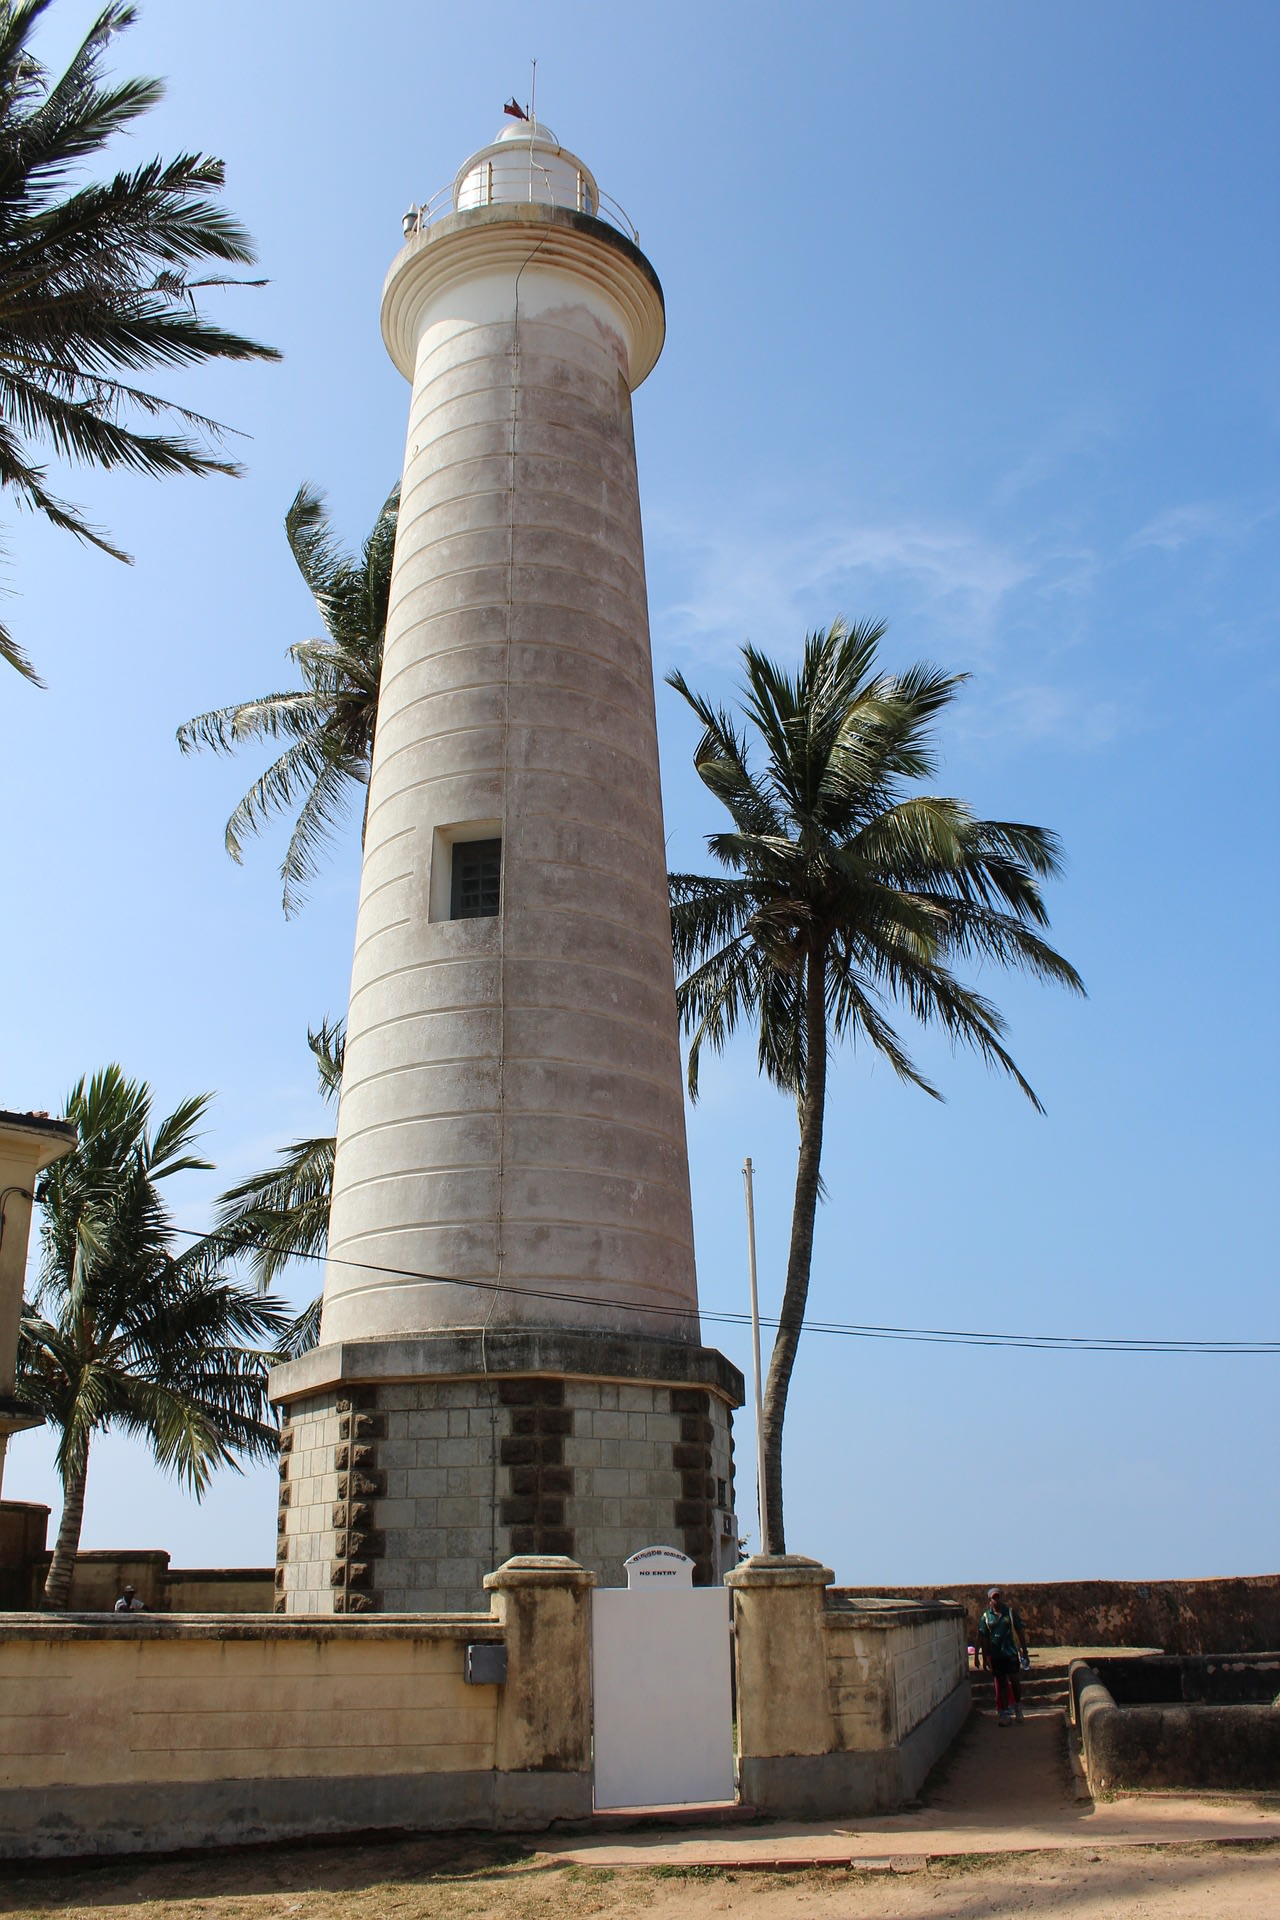 Go to see the Galle Fort